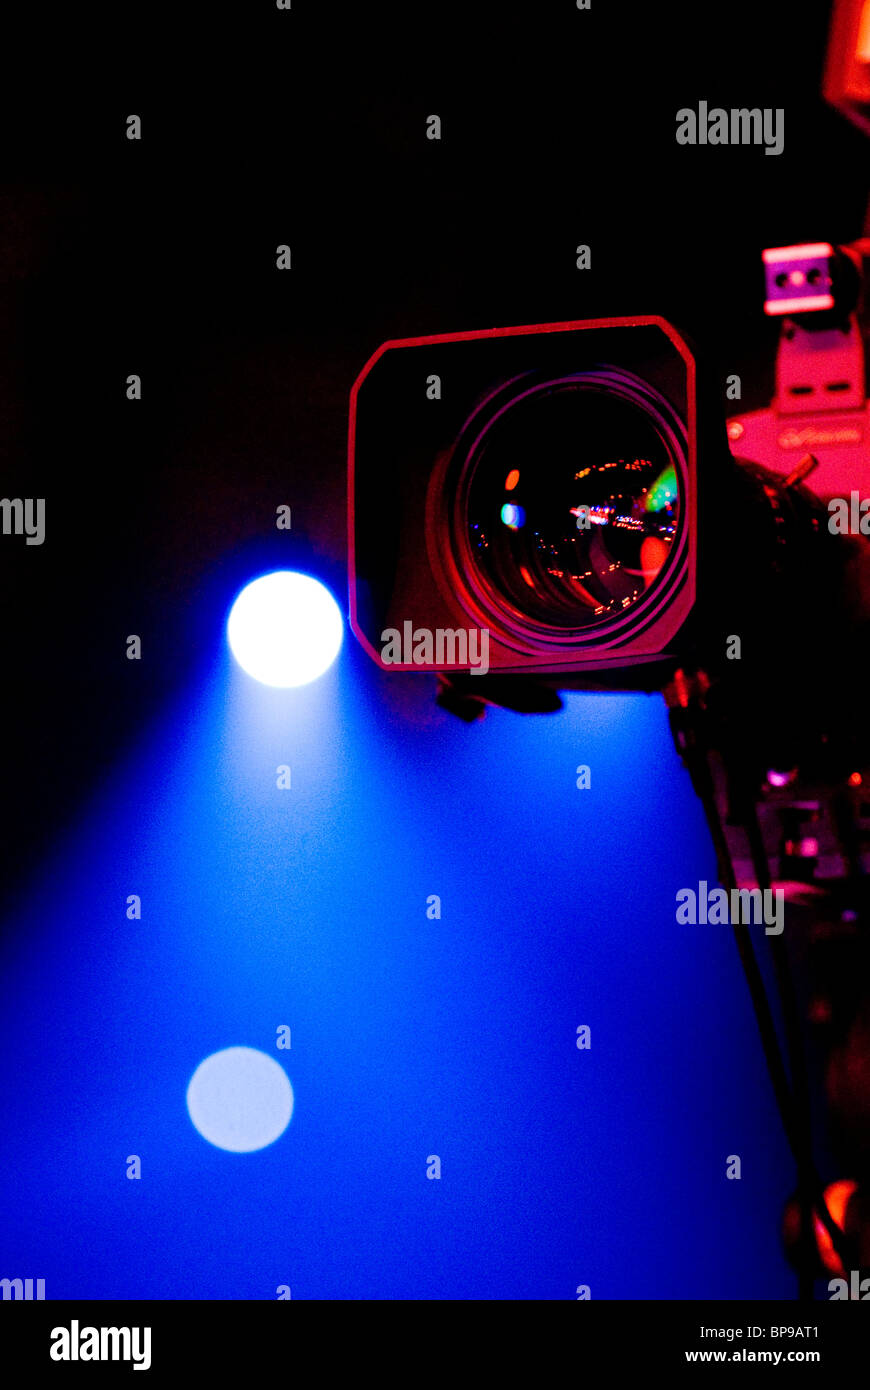 Video camera lens and stage lights - Stock Image